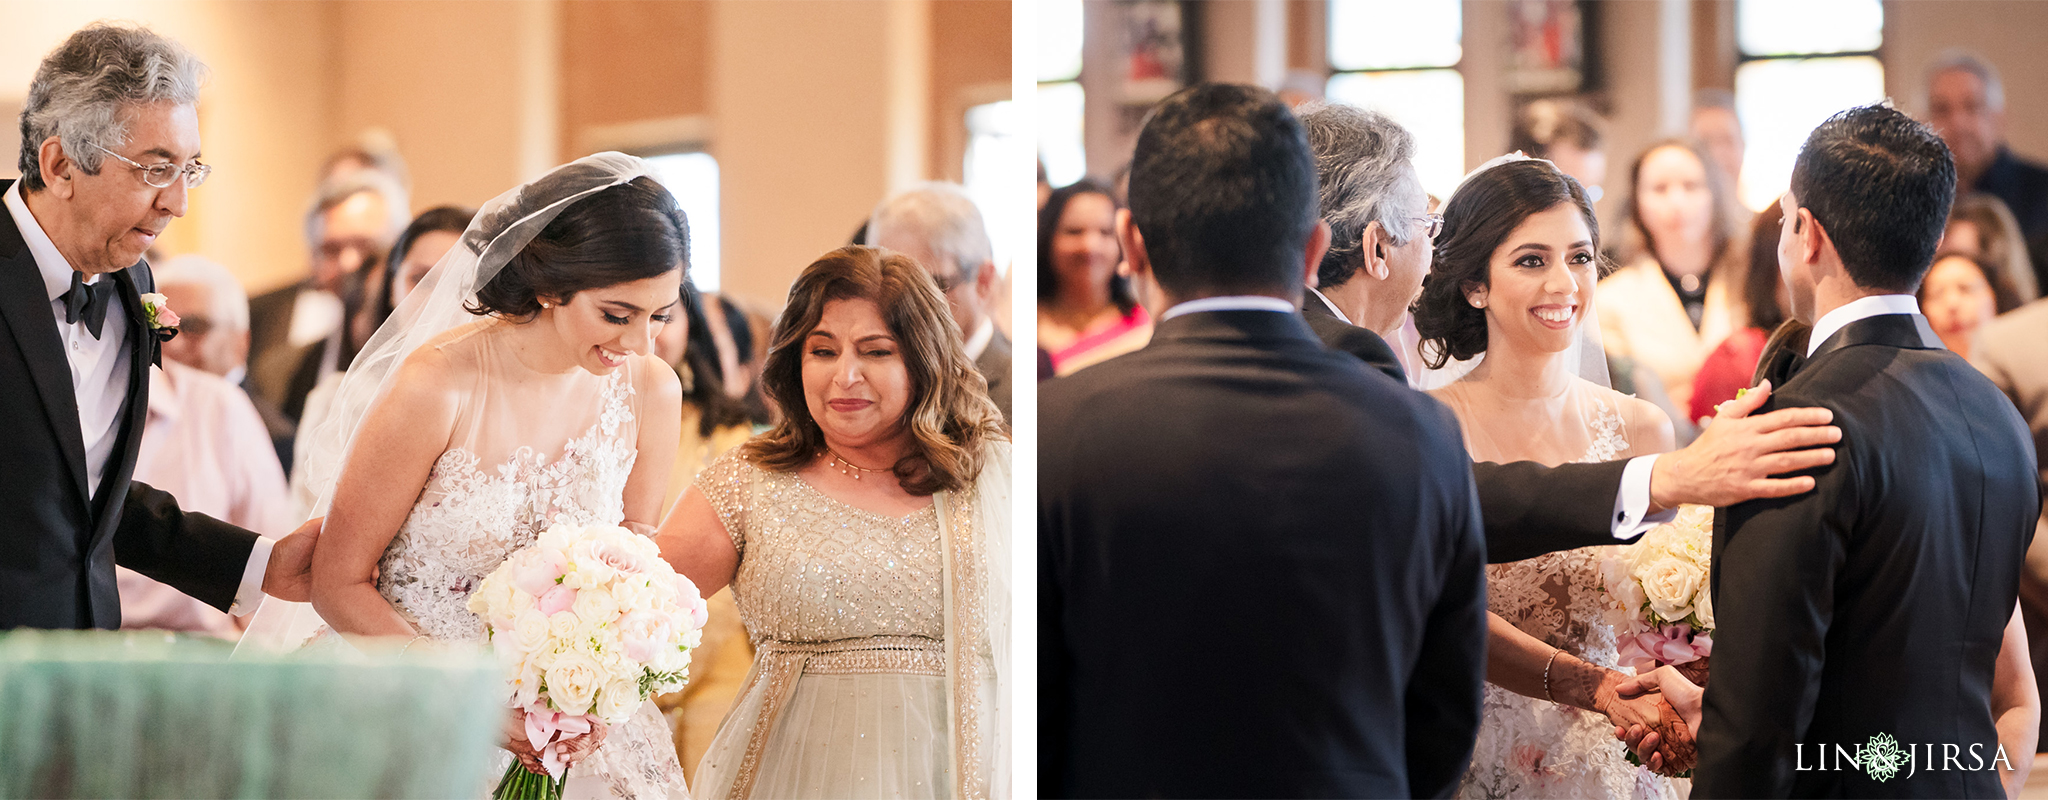 11 Newport Beach Marriott Indian Wedding Photography 1